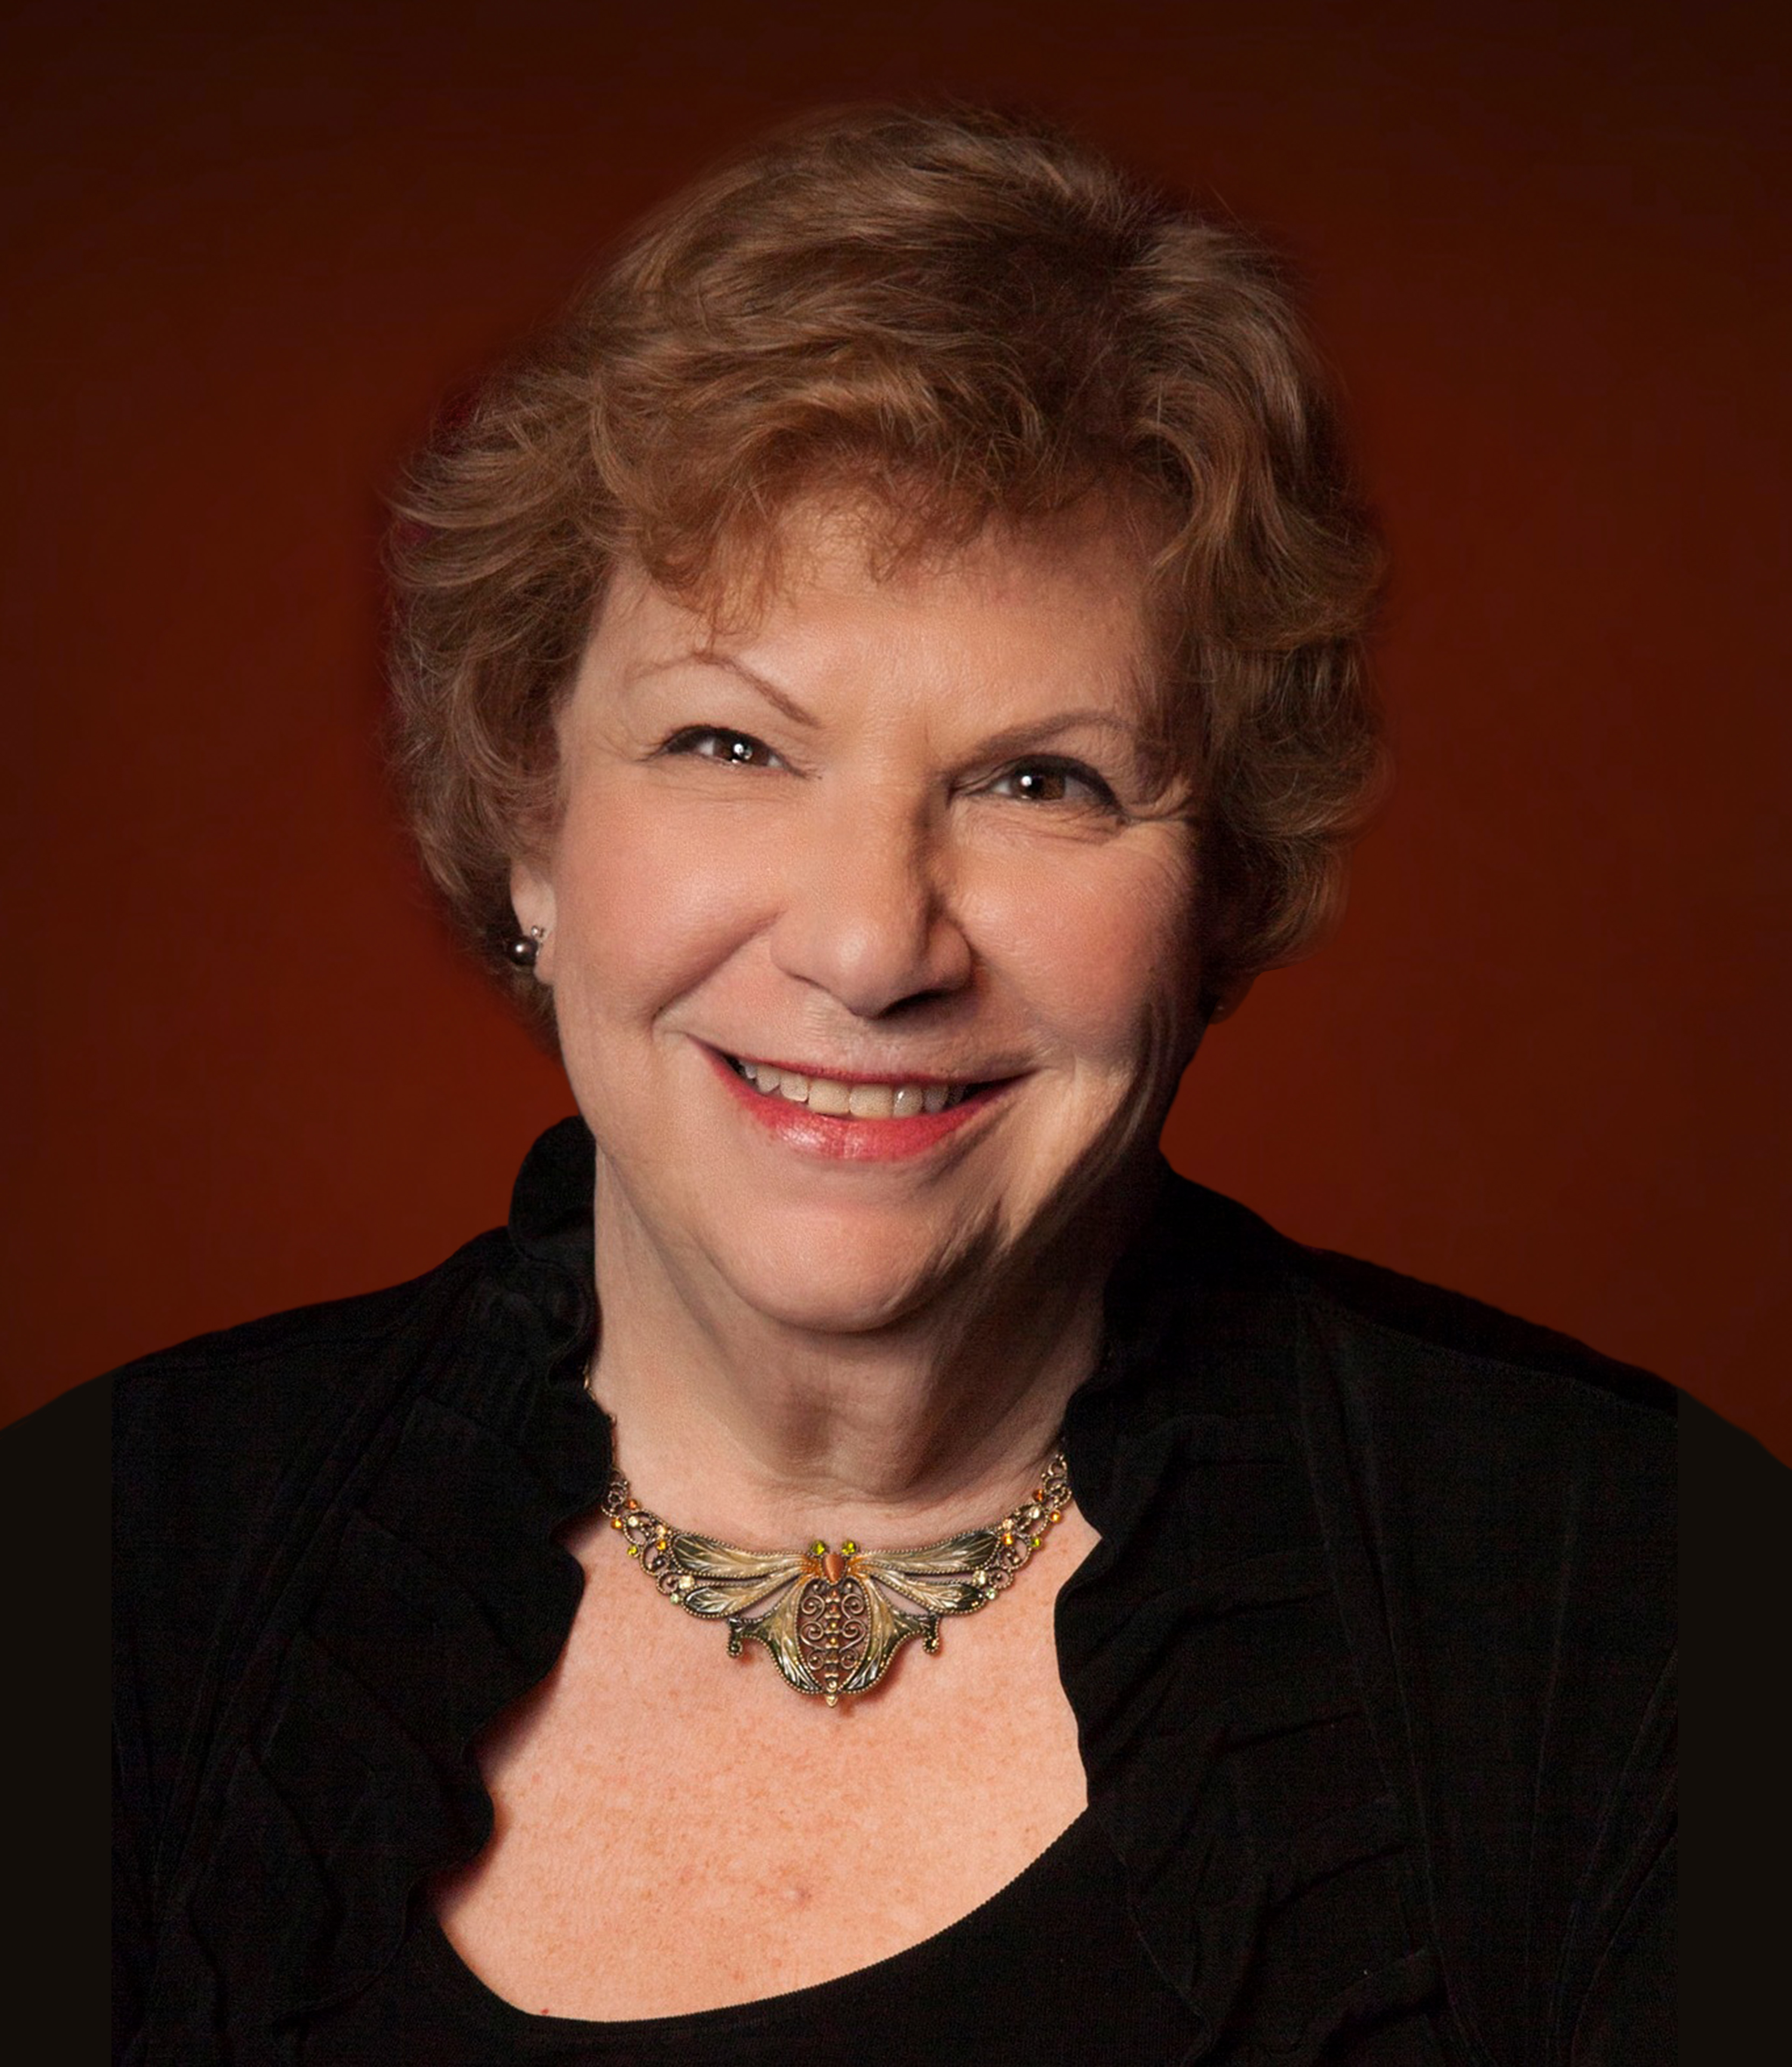 Joan Lawton, Chairman of The Board of Trustees of The Academy of Magical Arts